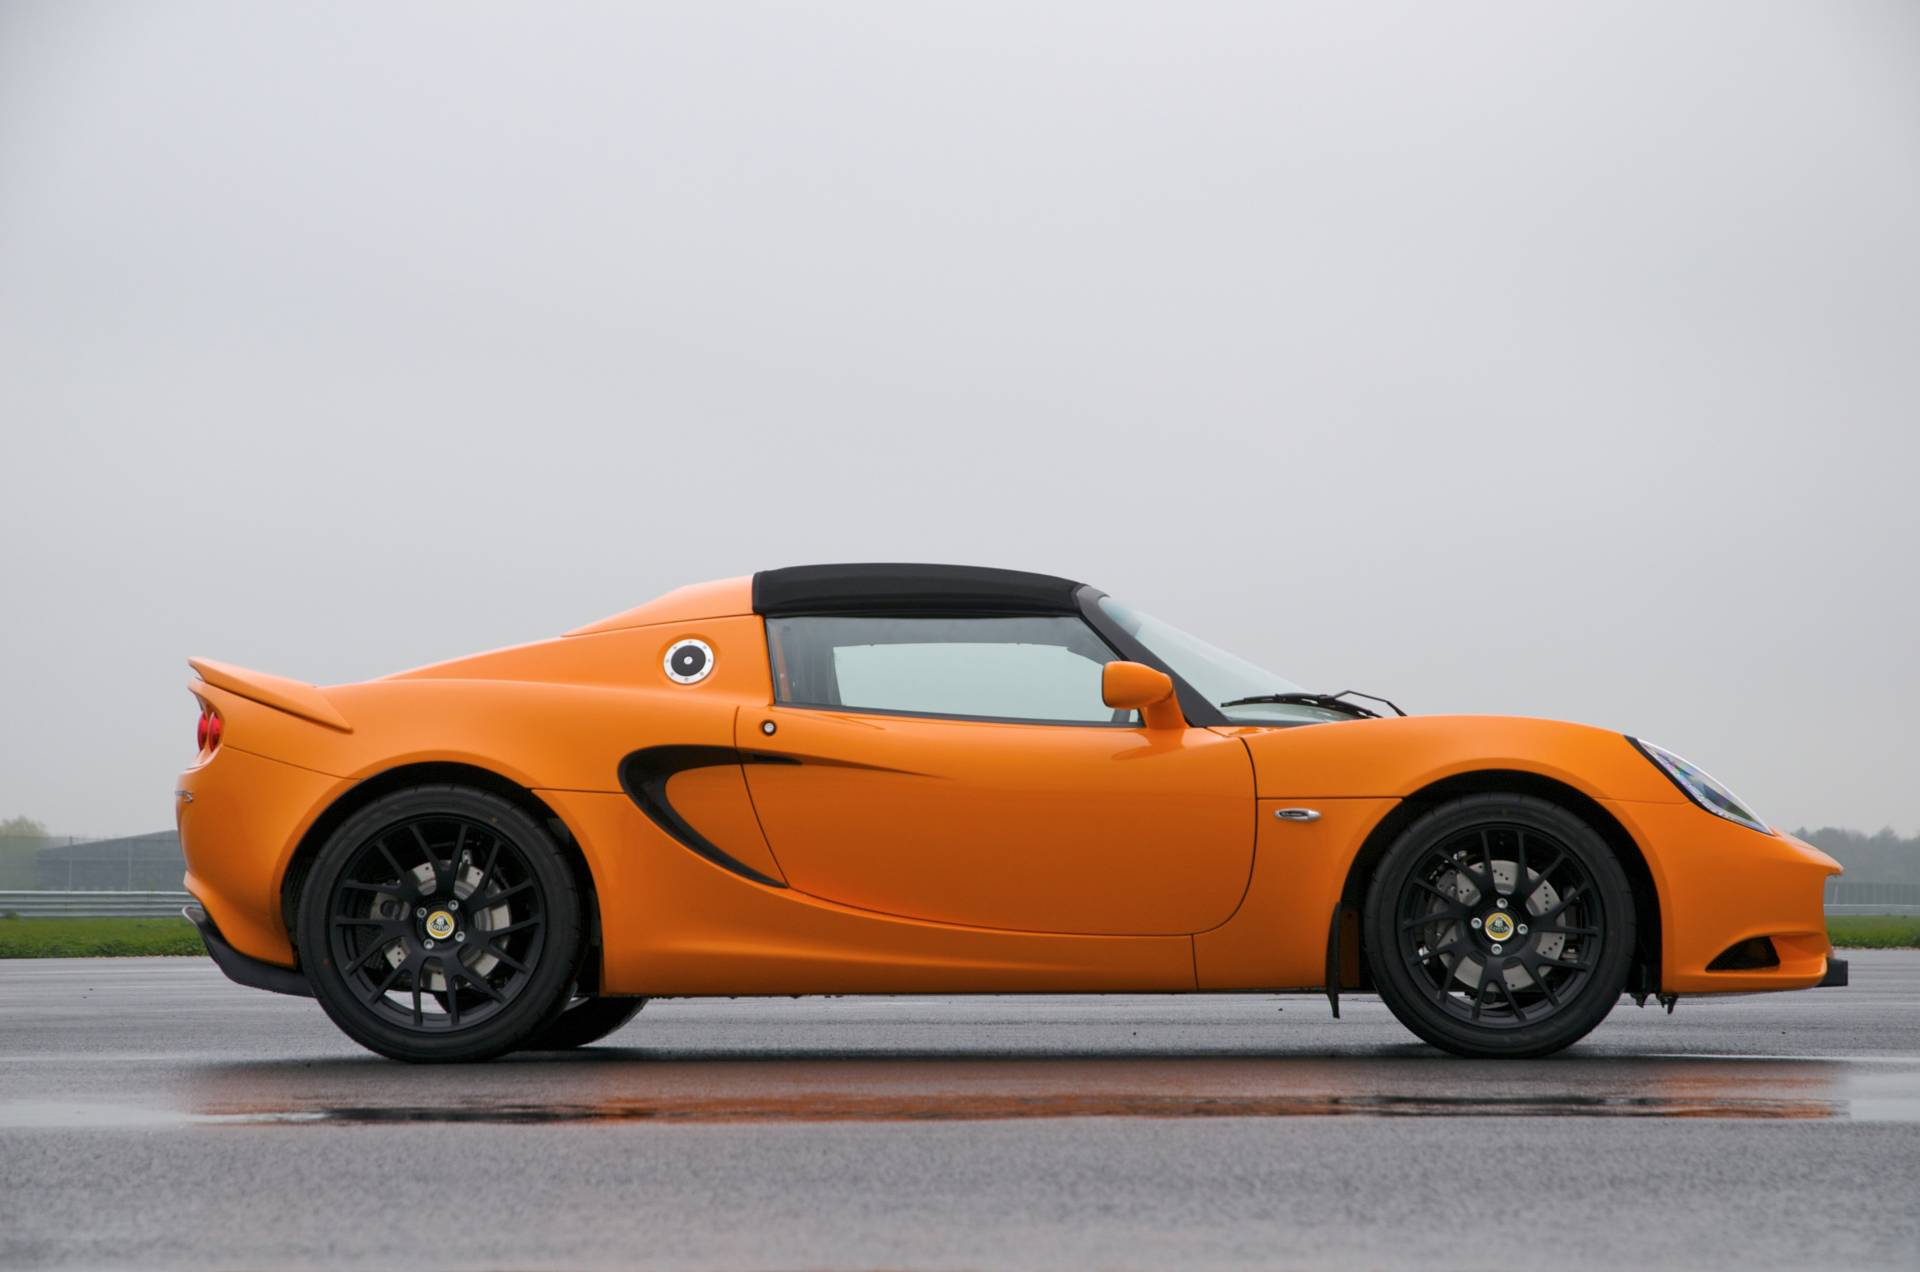 2013 Lotus Elise News And Information Conceptcarz Com